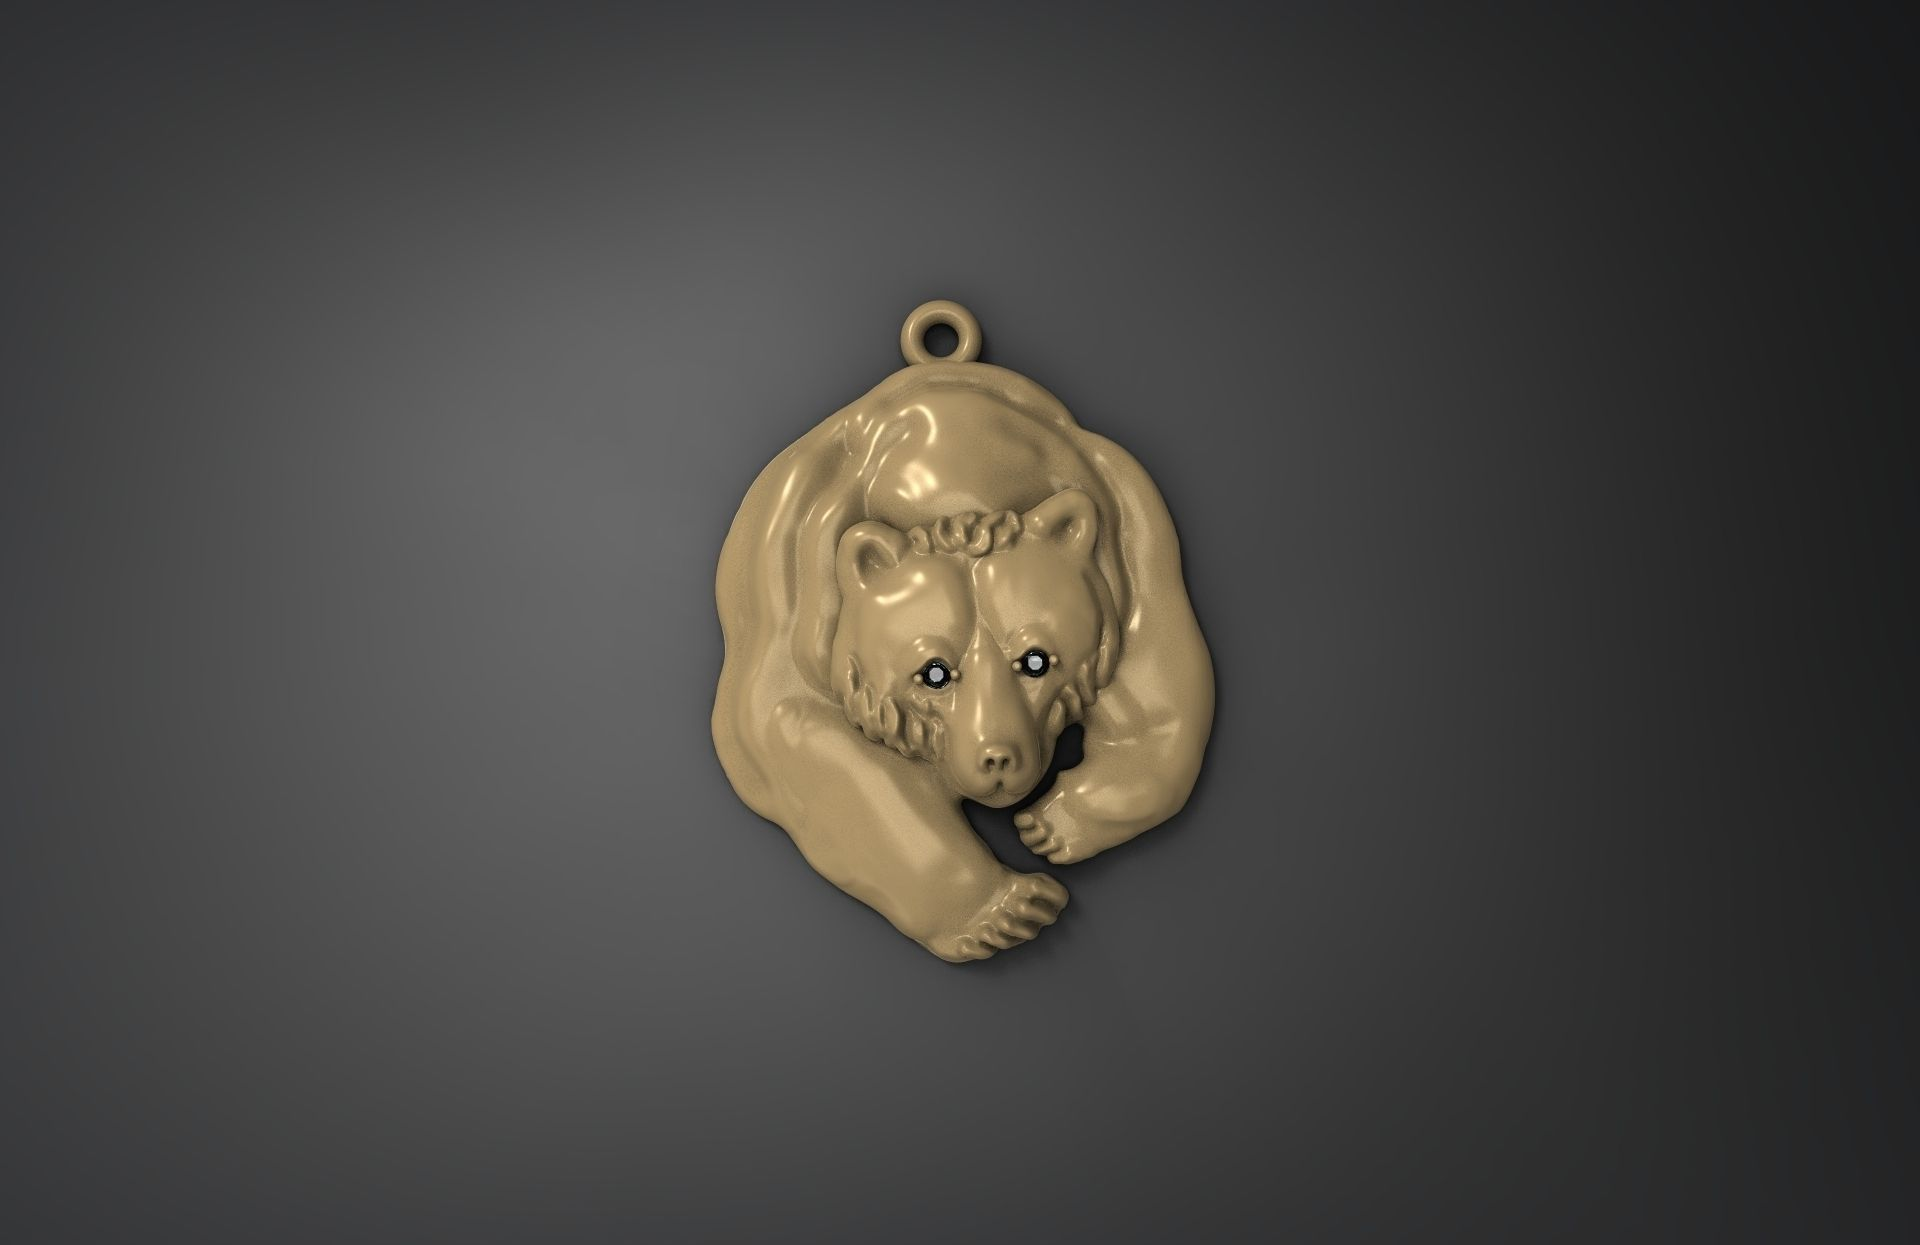 pomellato necklace pendant yellow bear teddy gold